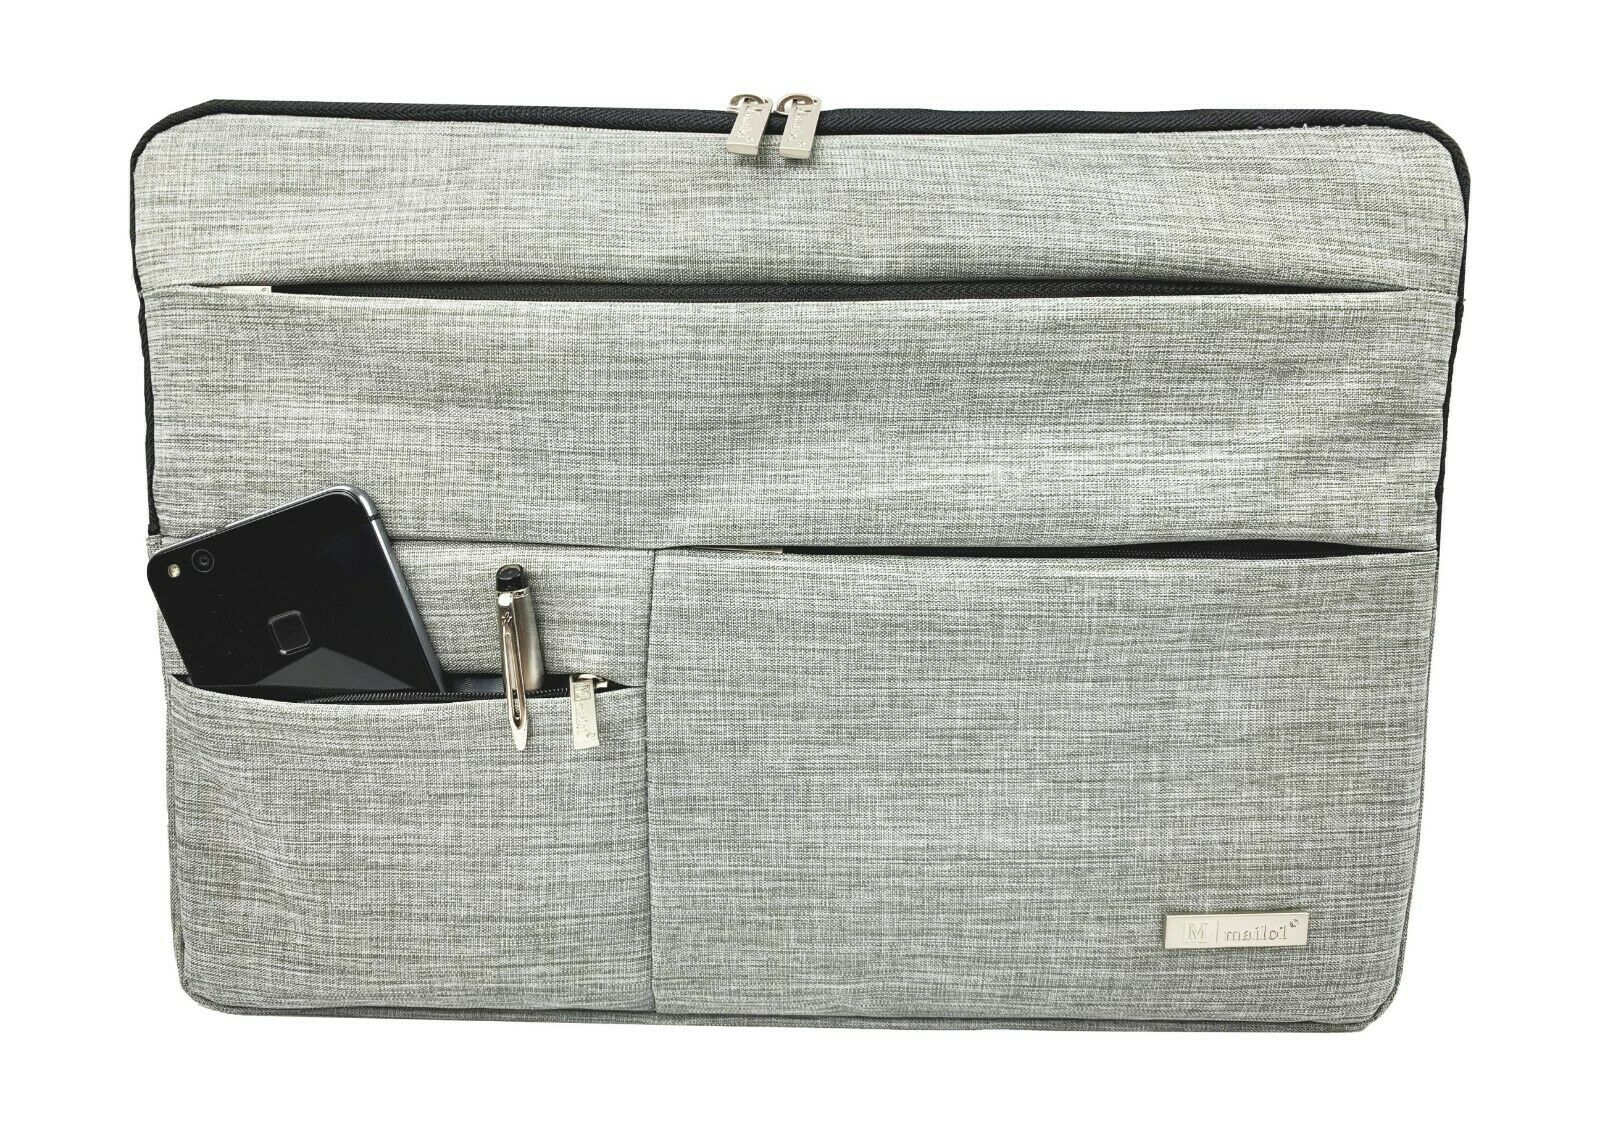 15 Zoll - 15,6 Zoll mailo1© Notebooktasche Laptop MacBook iPad Hülle